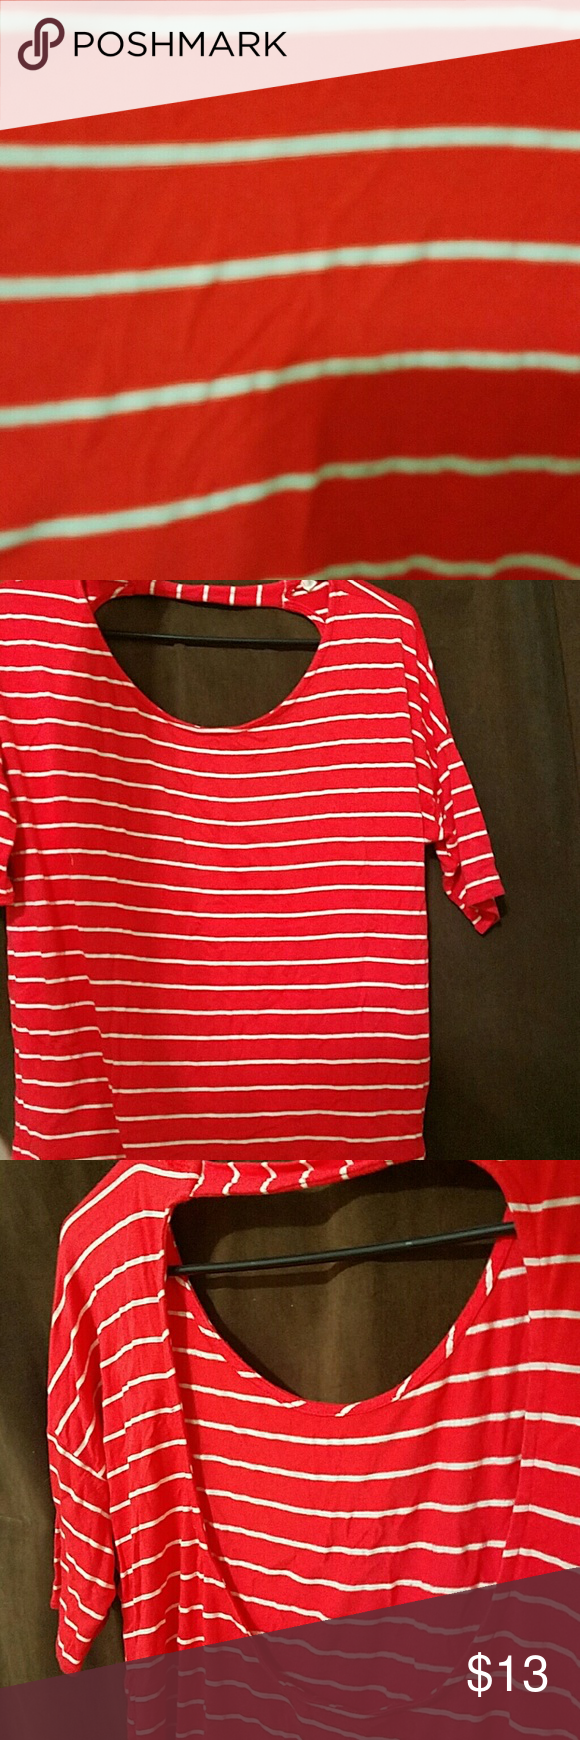 Striped top Coral and white striped open back top. Light and flowing top that's great for summer fall and spring, a must have staple piece. Soprano Tops Blouses